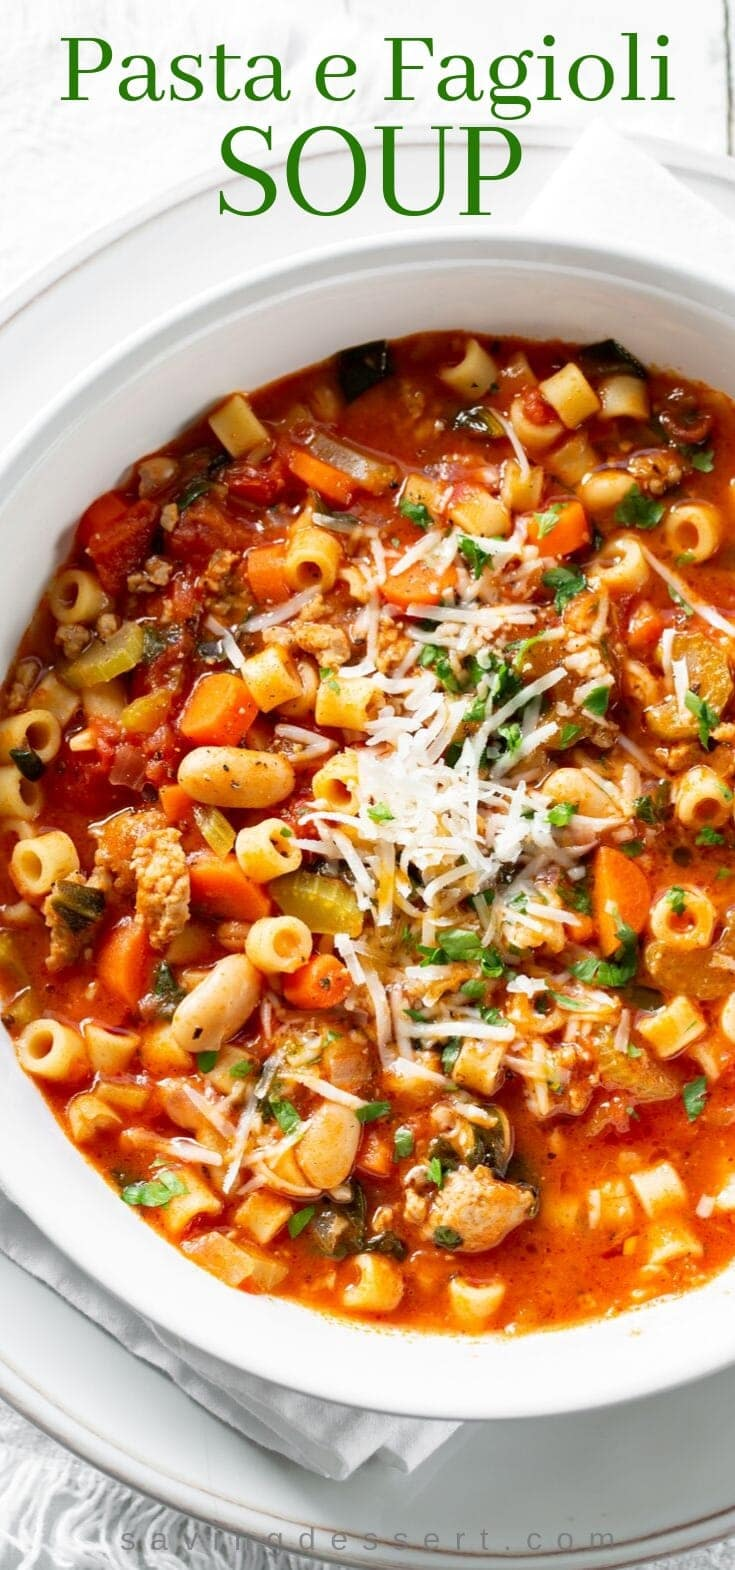 A big bowl of Pasta e Fagioli soup with Italian sausage and beans garnished with parsley and Parmesan